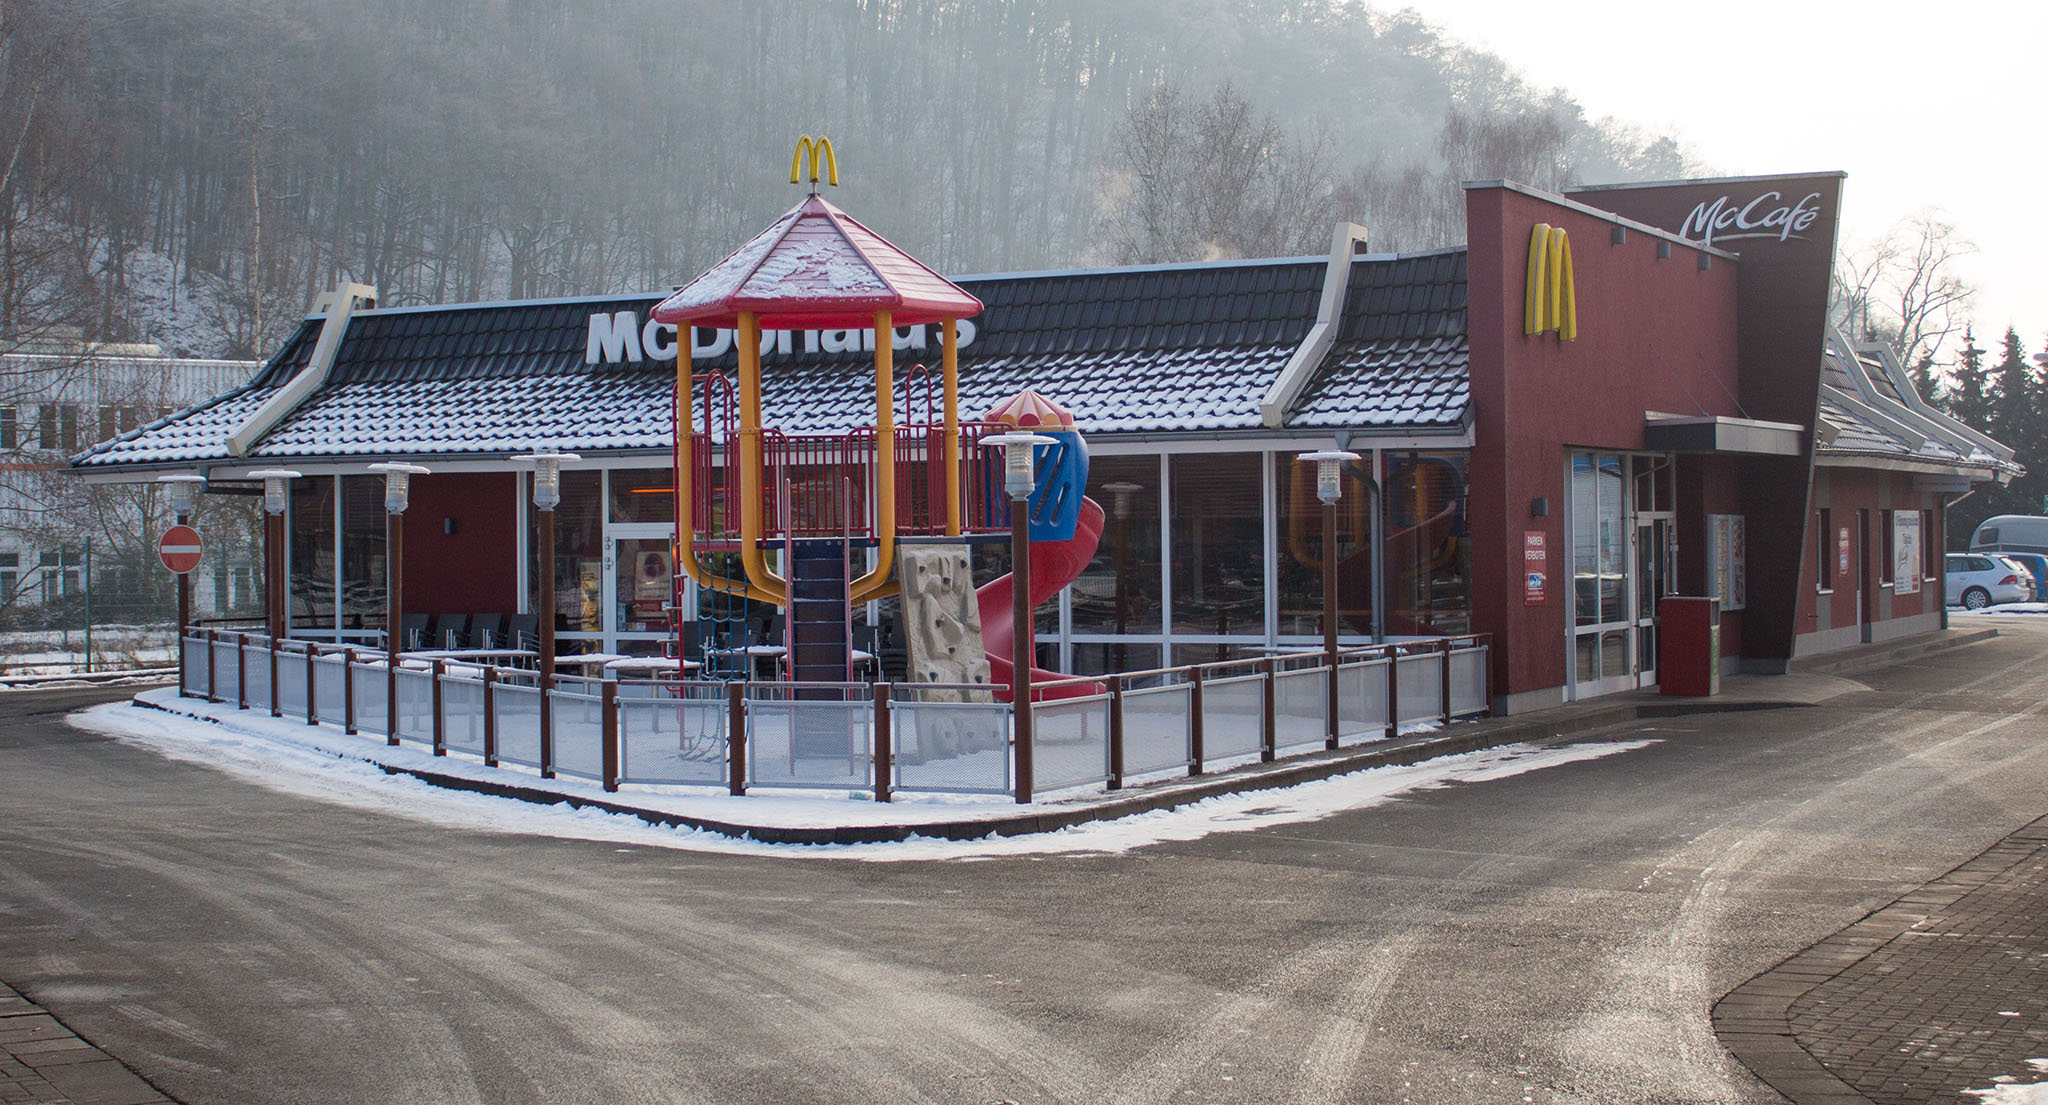 Das McDonald's-Restaurant in Dillenburg